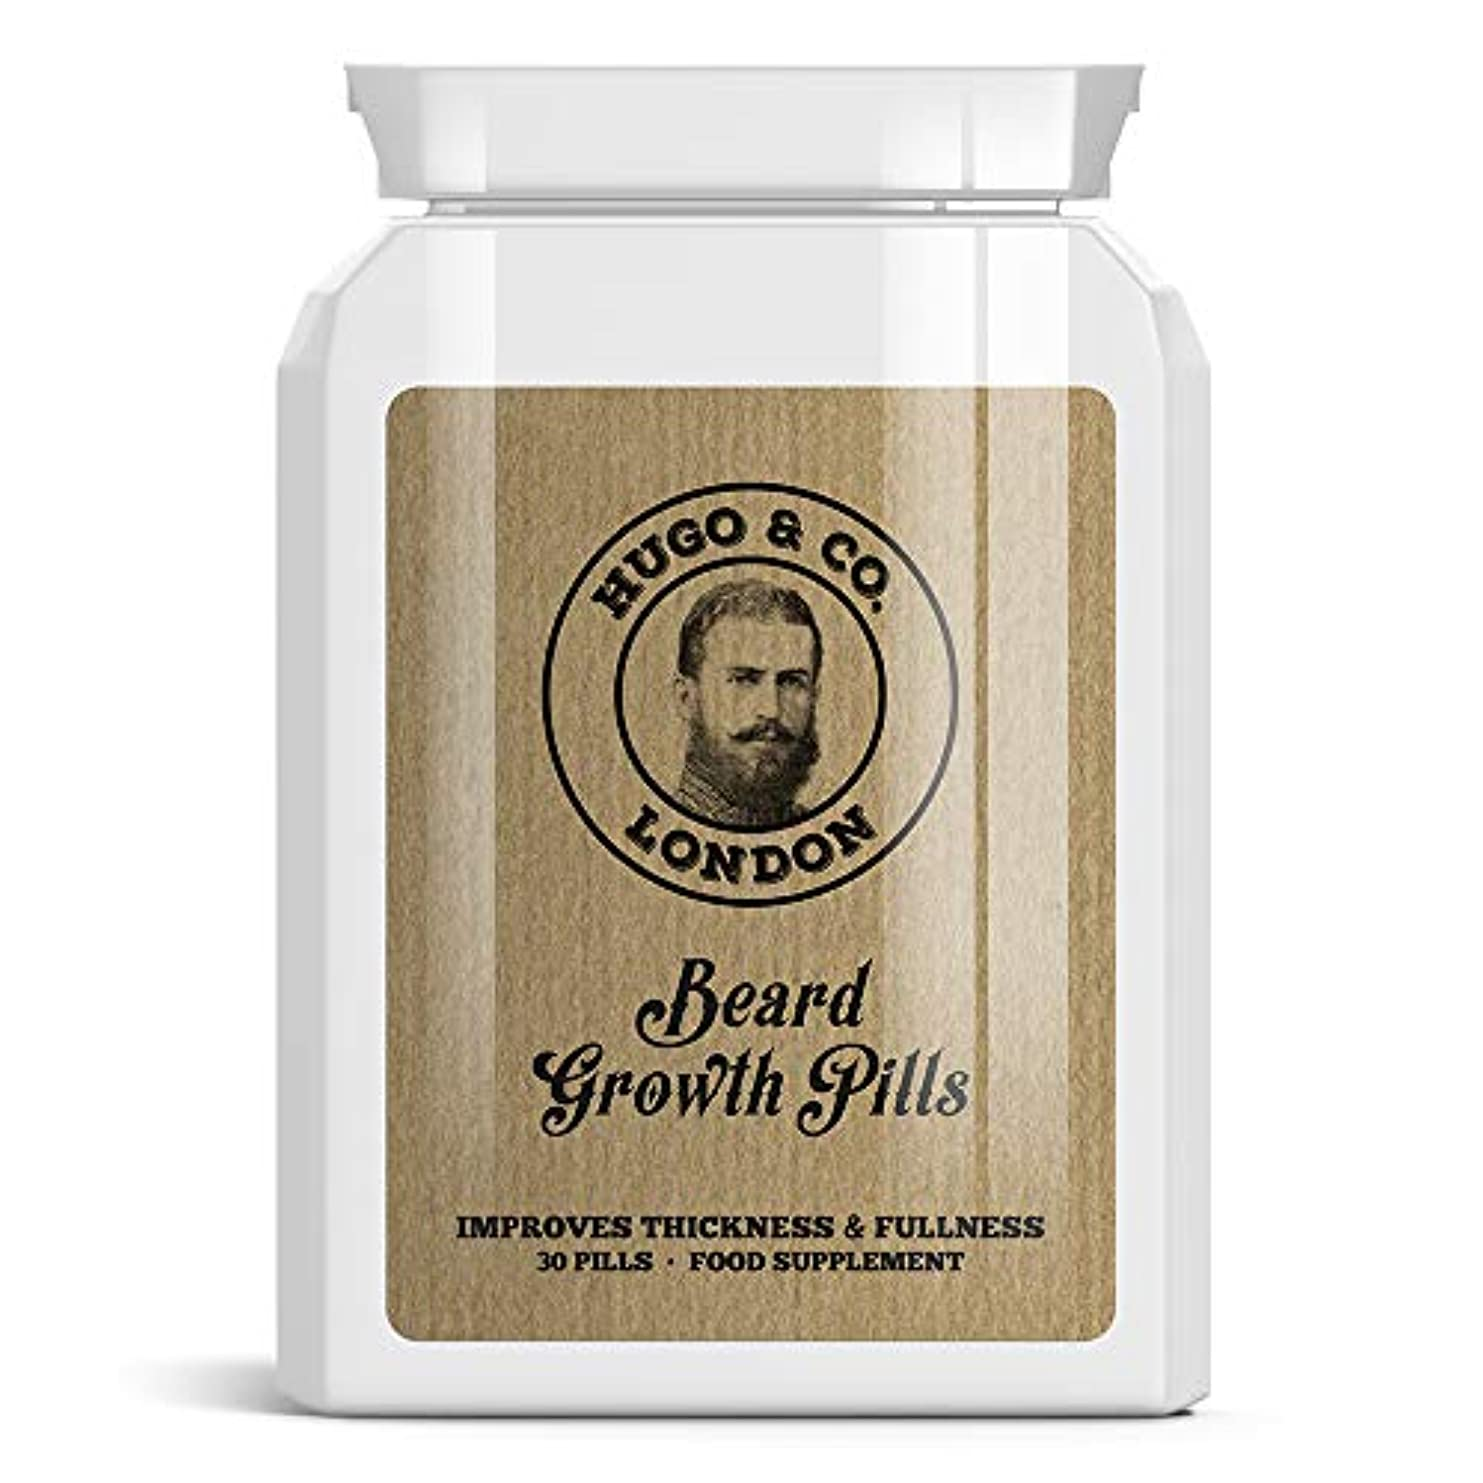 HUGO & CO LONDON BEARD GROWTH PILLS ロンドンひげの成長丸薬は - パッチ状ビッグシックひげGROW STOPS HUGO& CO Rondon hi-ge no seich? gan'yaku...